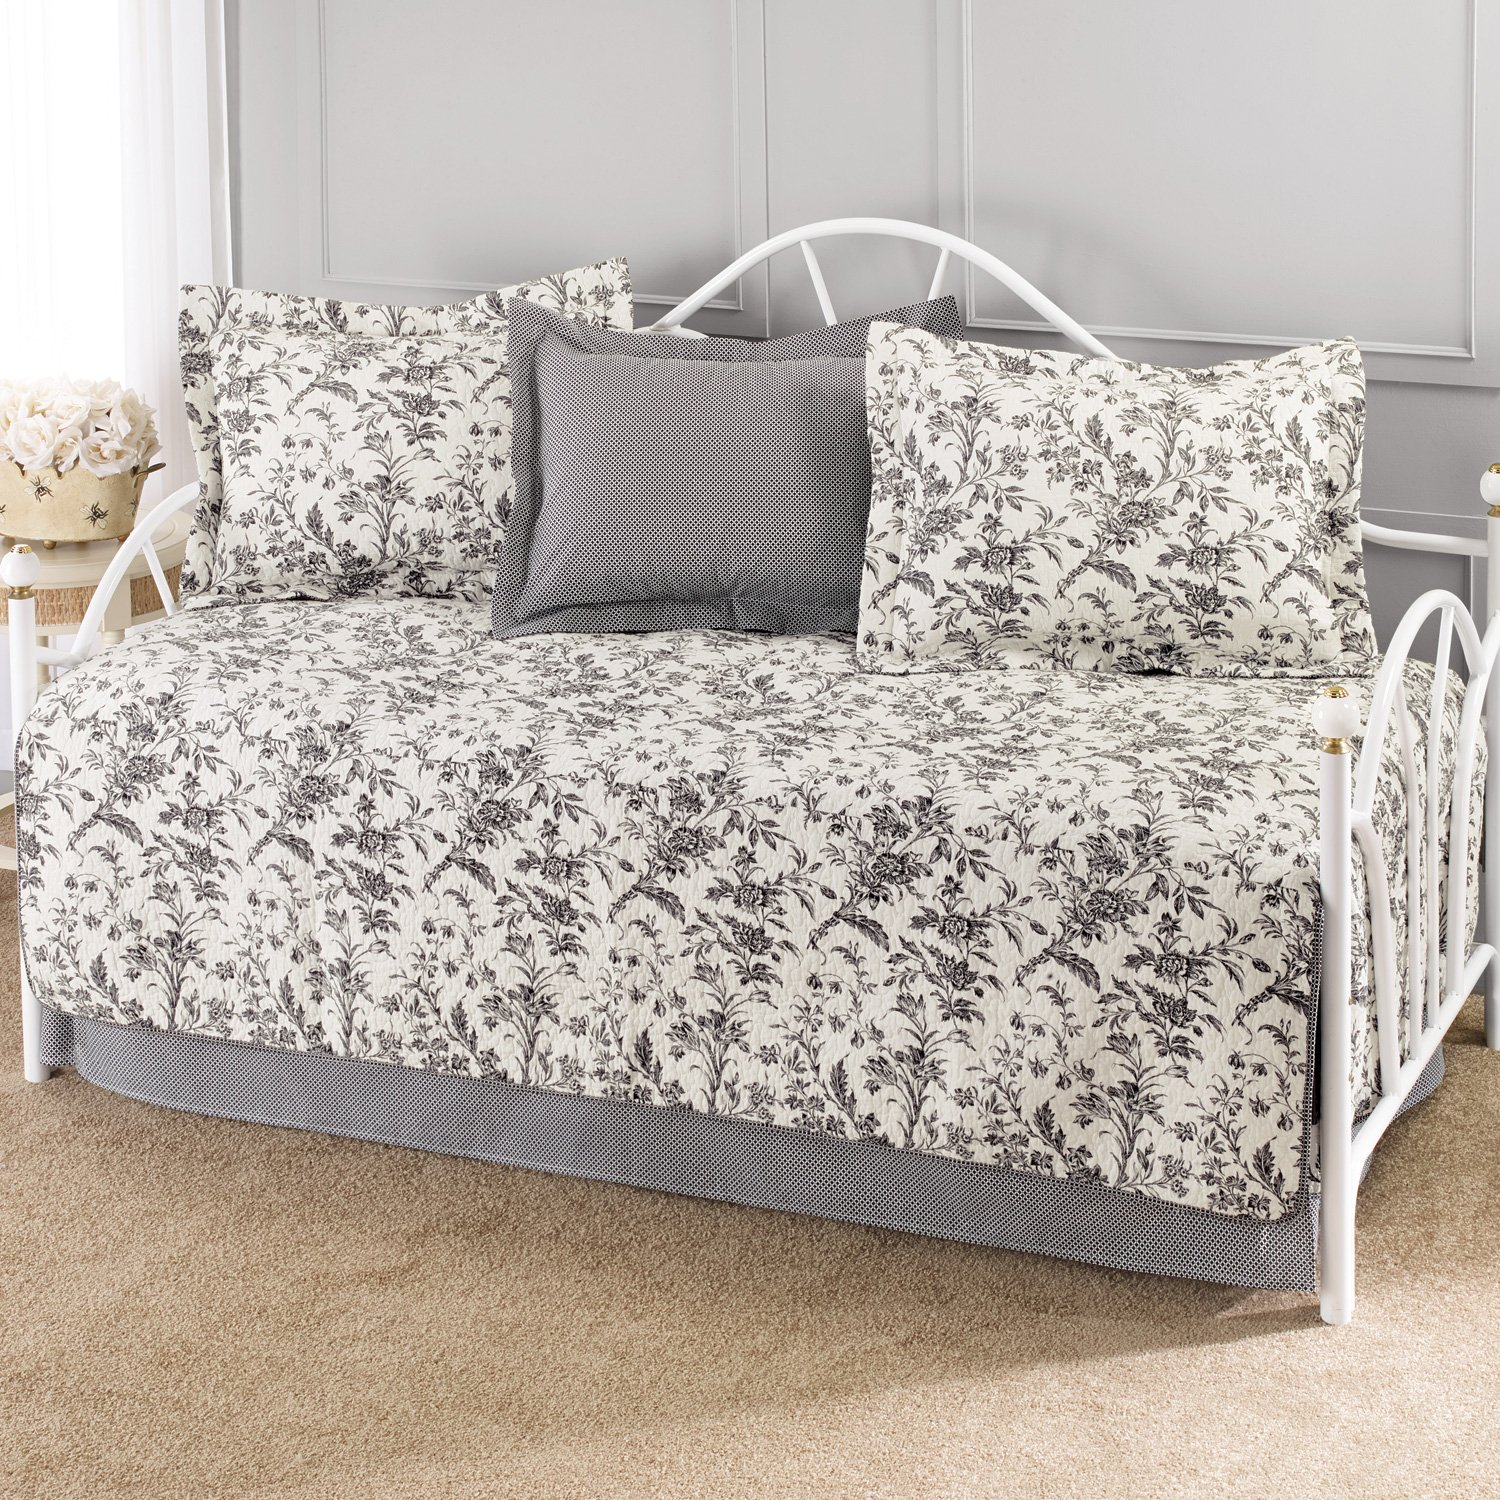 amazoncom laura ashley amberley 5piece cotton daybedquilt set twin home u0026 kitchen